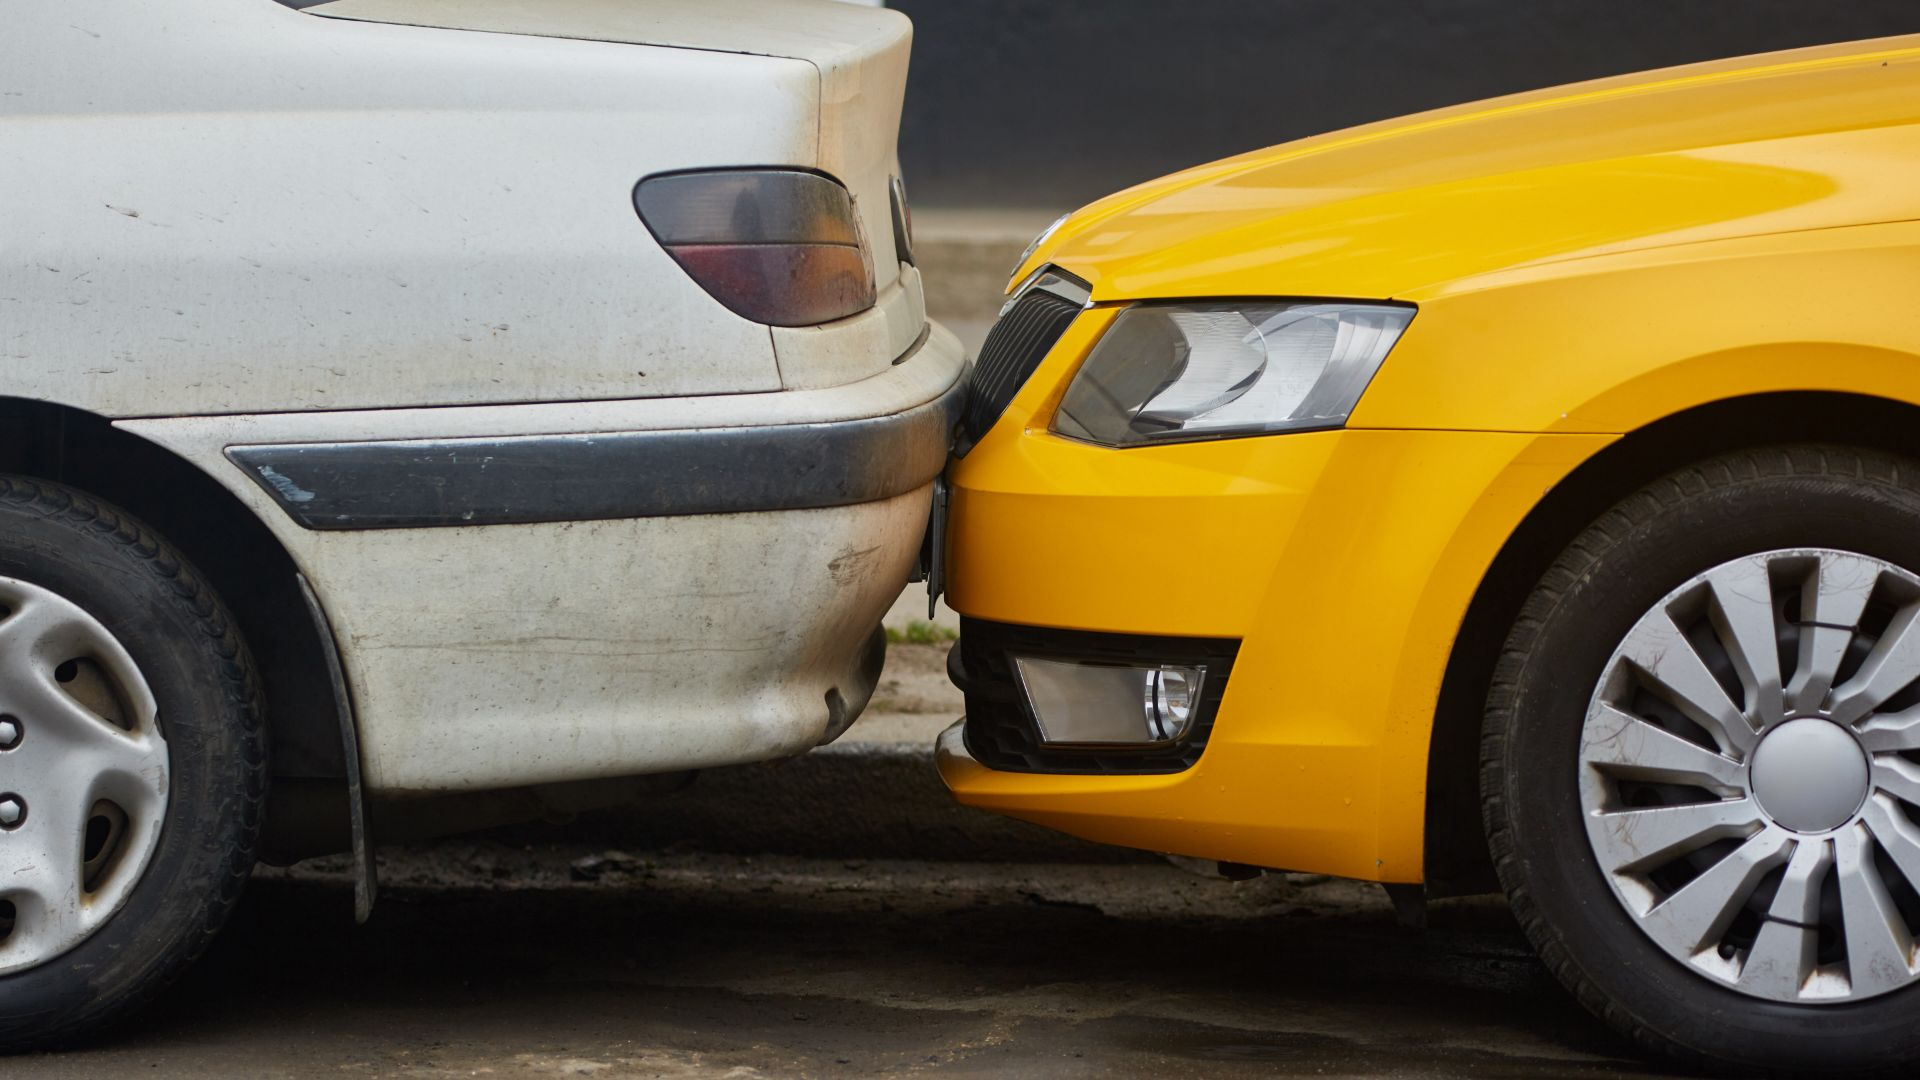 Crunch time: how to avoid low-speed parking accidents